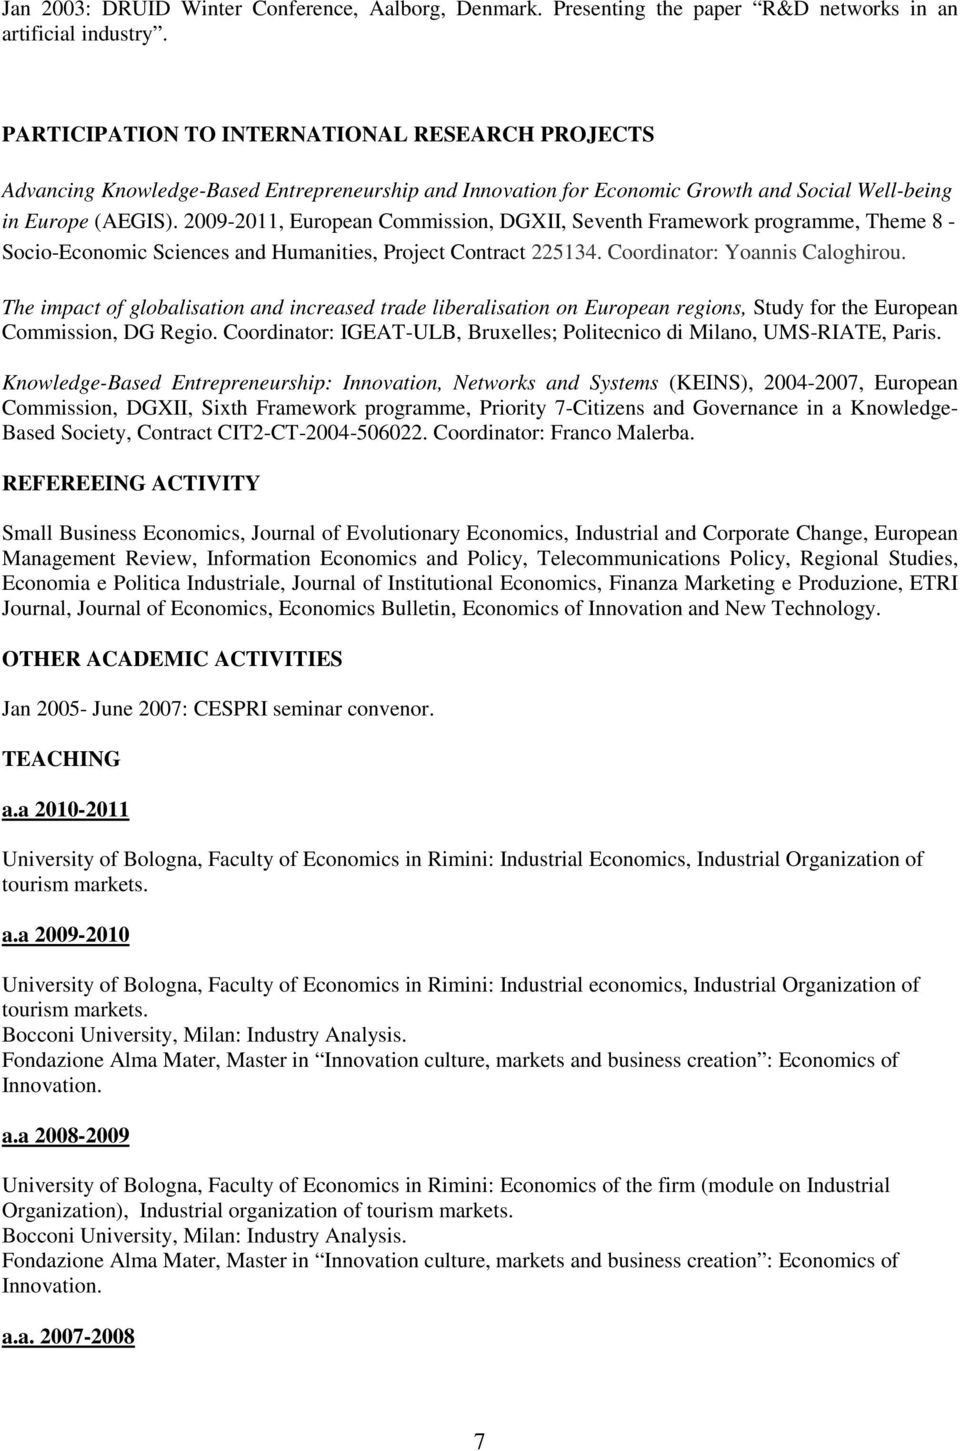 2009-2011, European Commission, DGXII, Seventh Framework programme, Theme 8 - Socio-Economic Sciences and Humanities, Project Contract 225134. Coordinator: Yoannis Caloghirou.